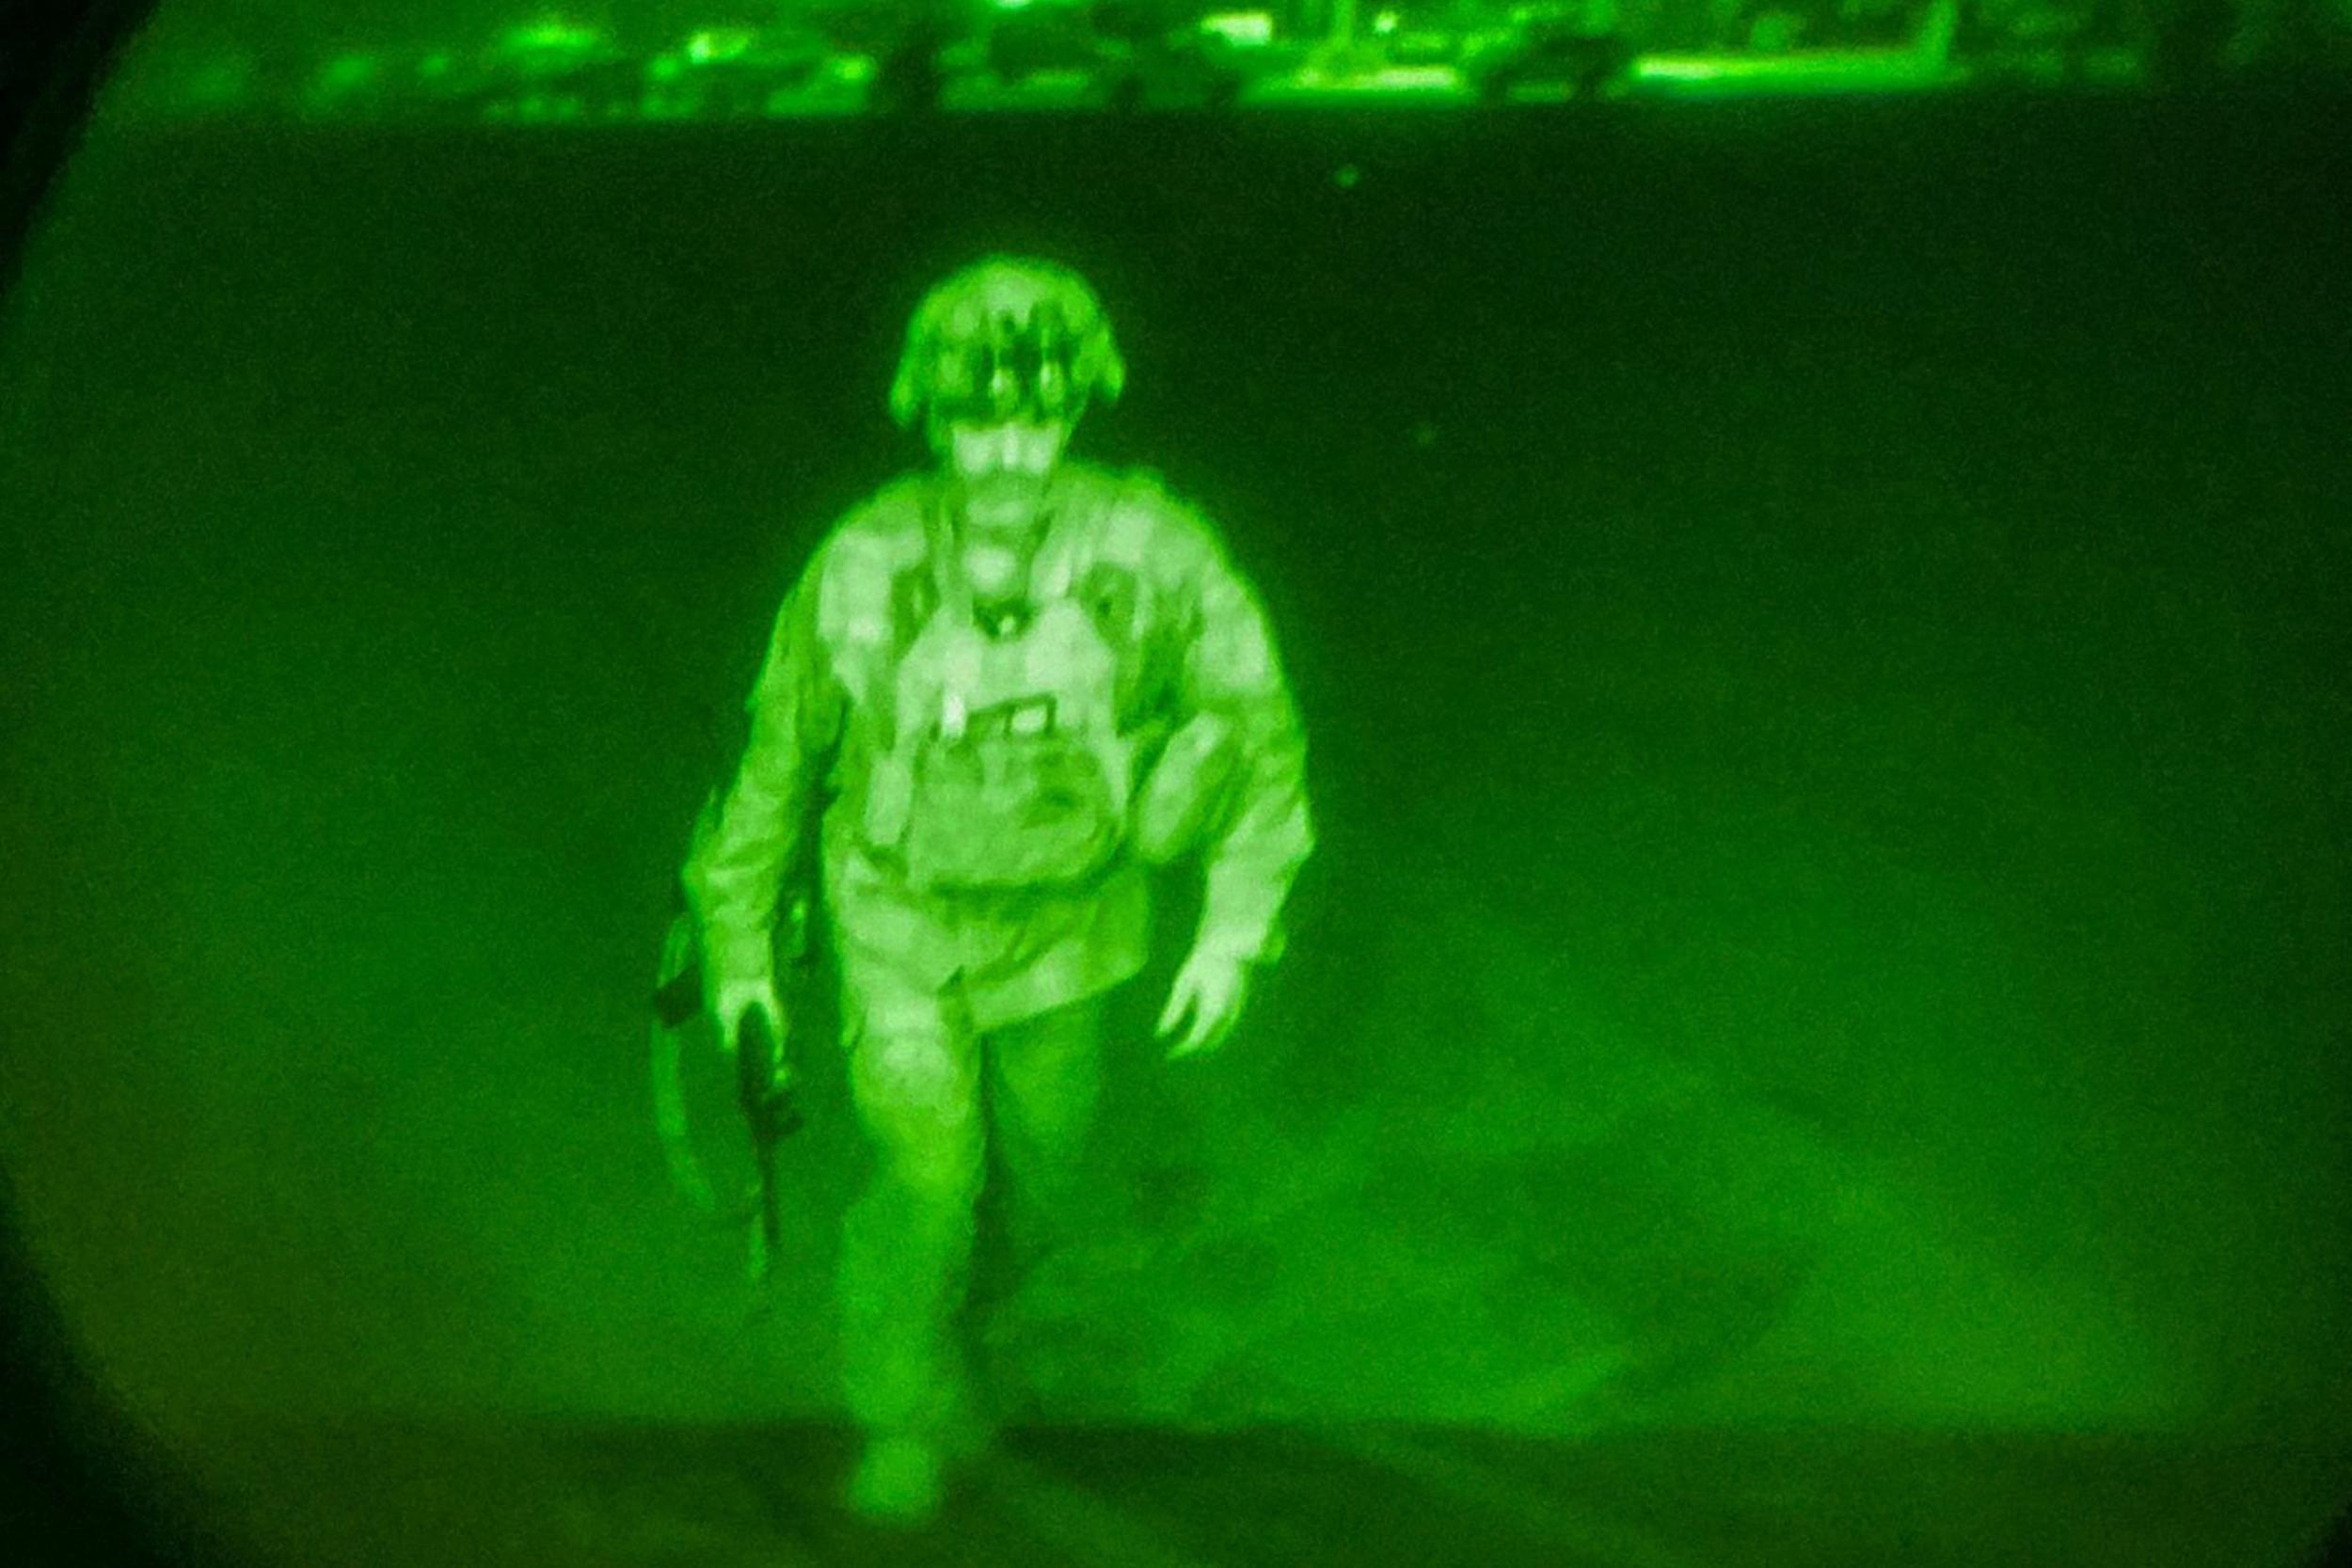 Leaving Afghanistan, U.S. general's ghostly image books place in history